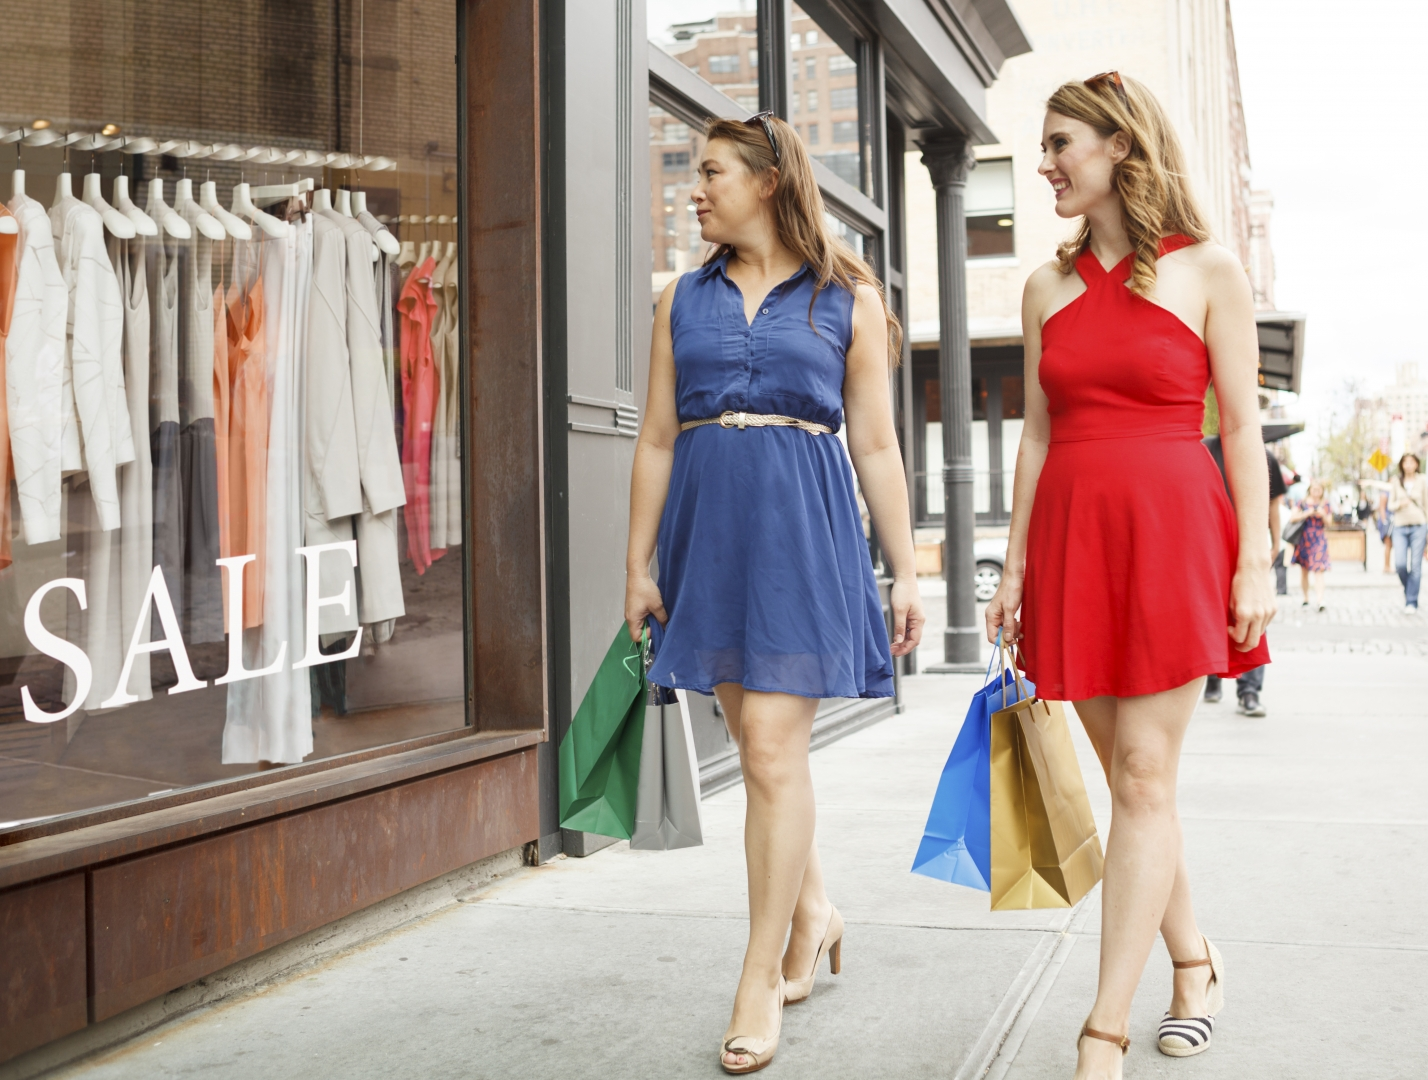 two women carrying shopping bags outside of apparel store